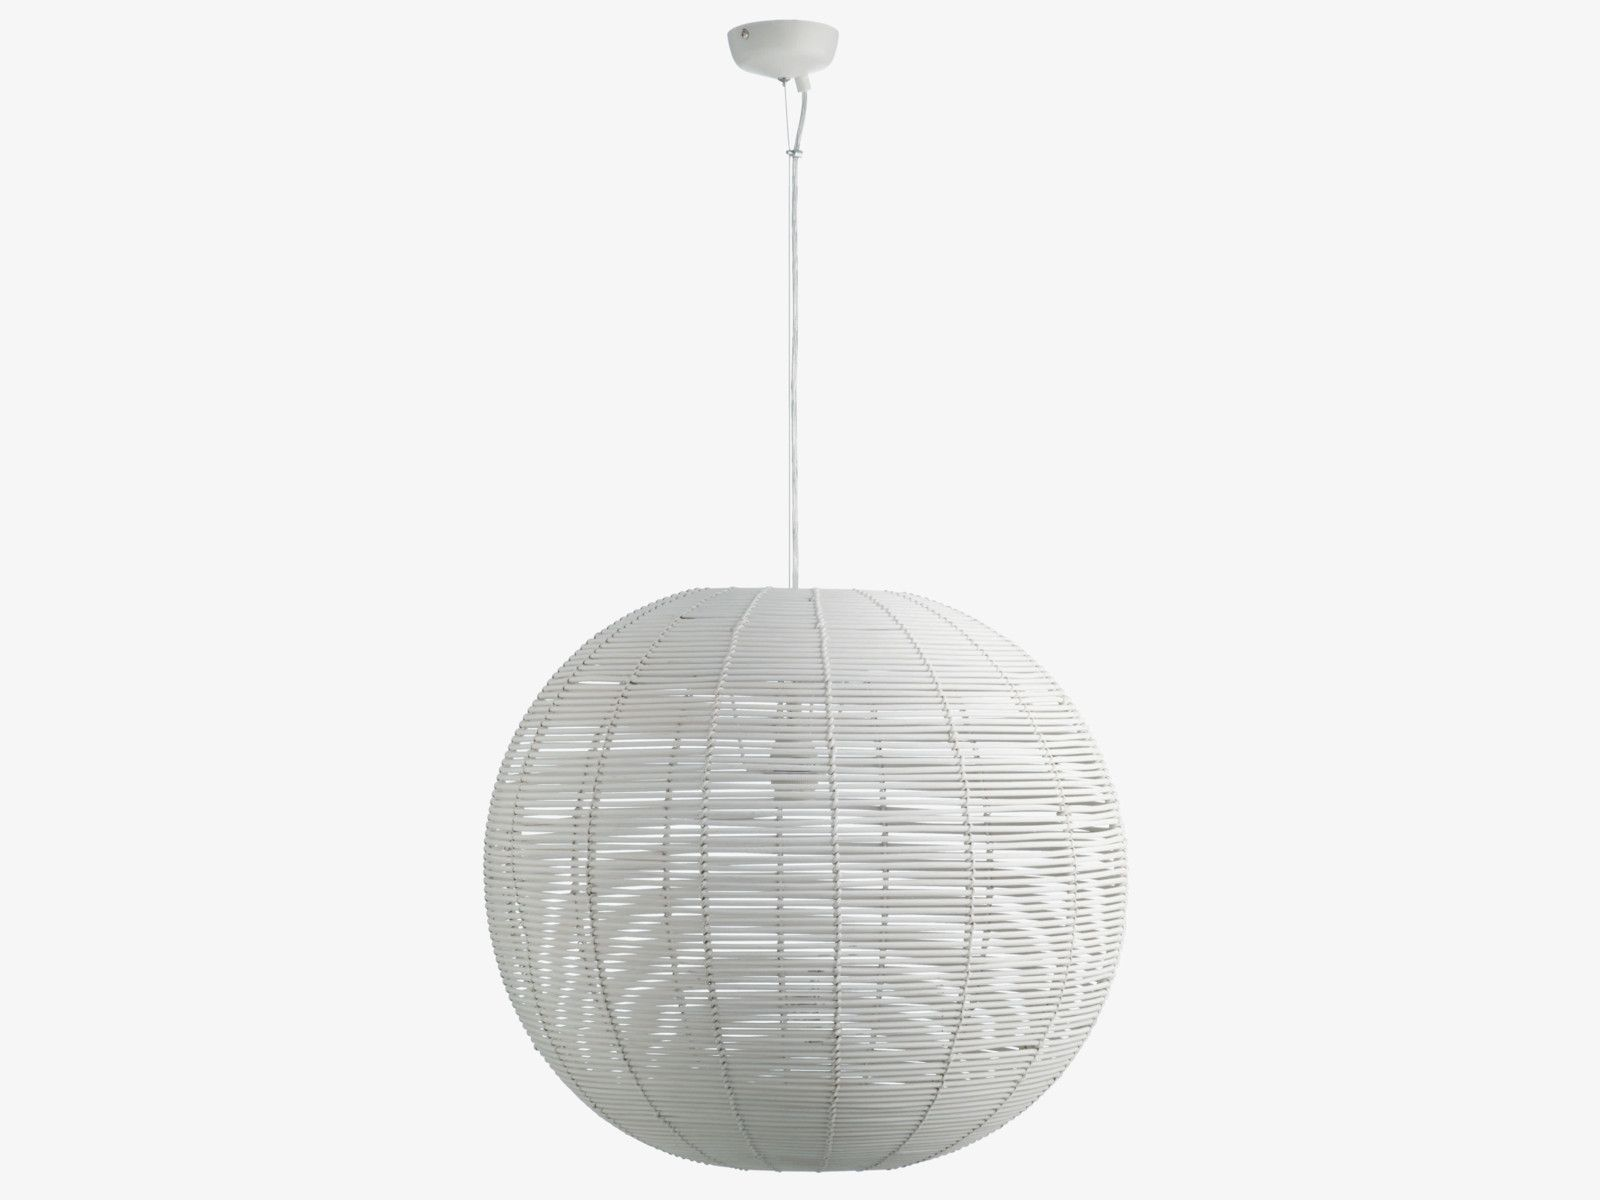 Check out the new furniture and accessories from our new ss14 check out the new furniture and accessories from our new ss14 lookbook ceiling light shadeslamp aloadofball Gallery